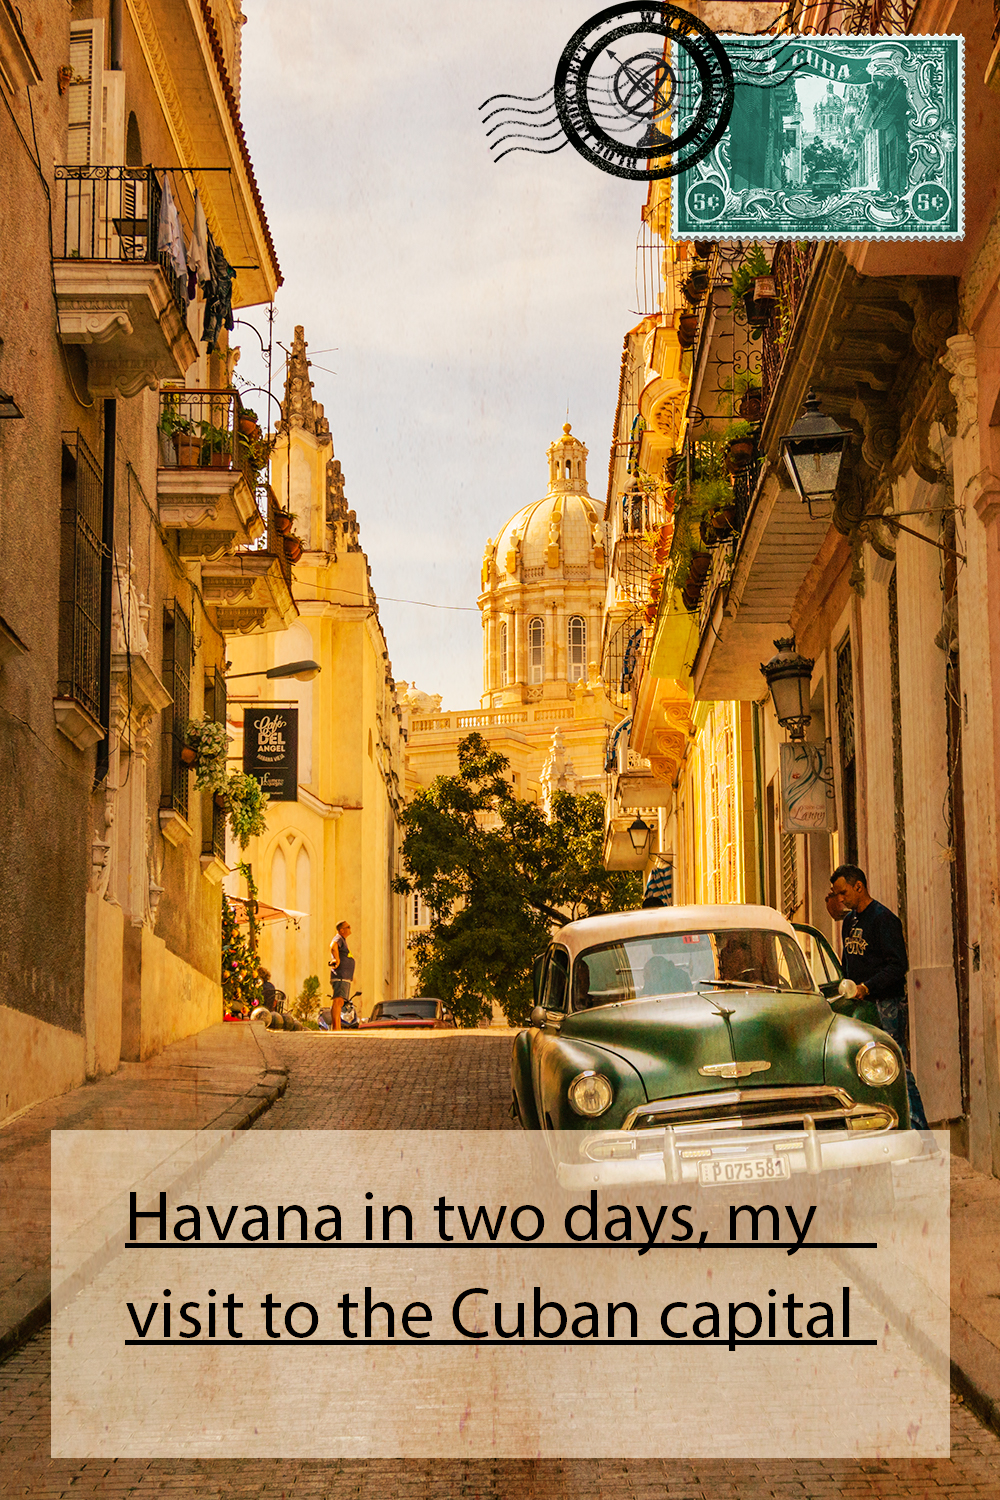 Havana in two days, my visit to the Cuban capital